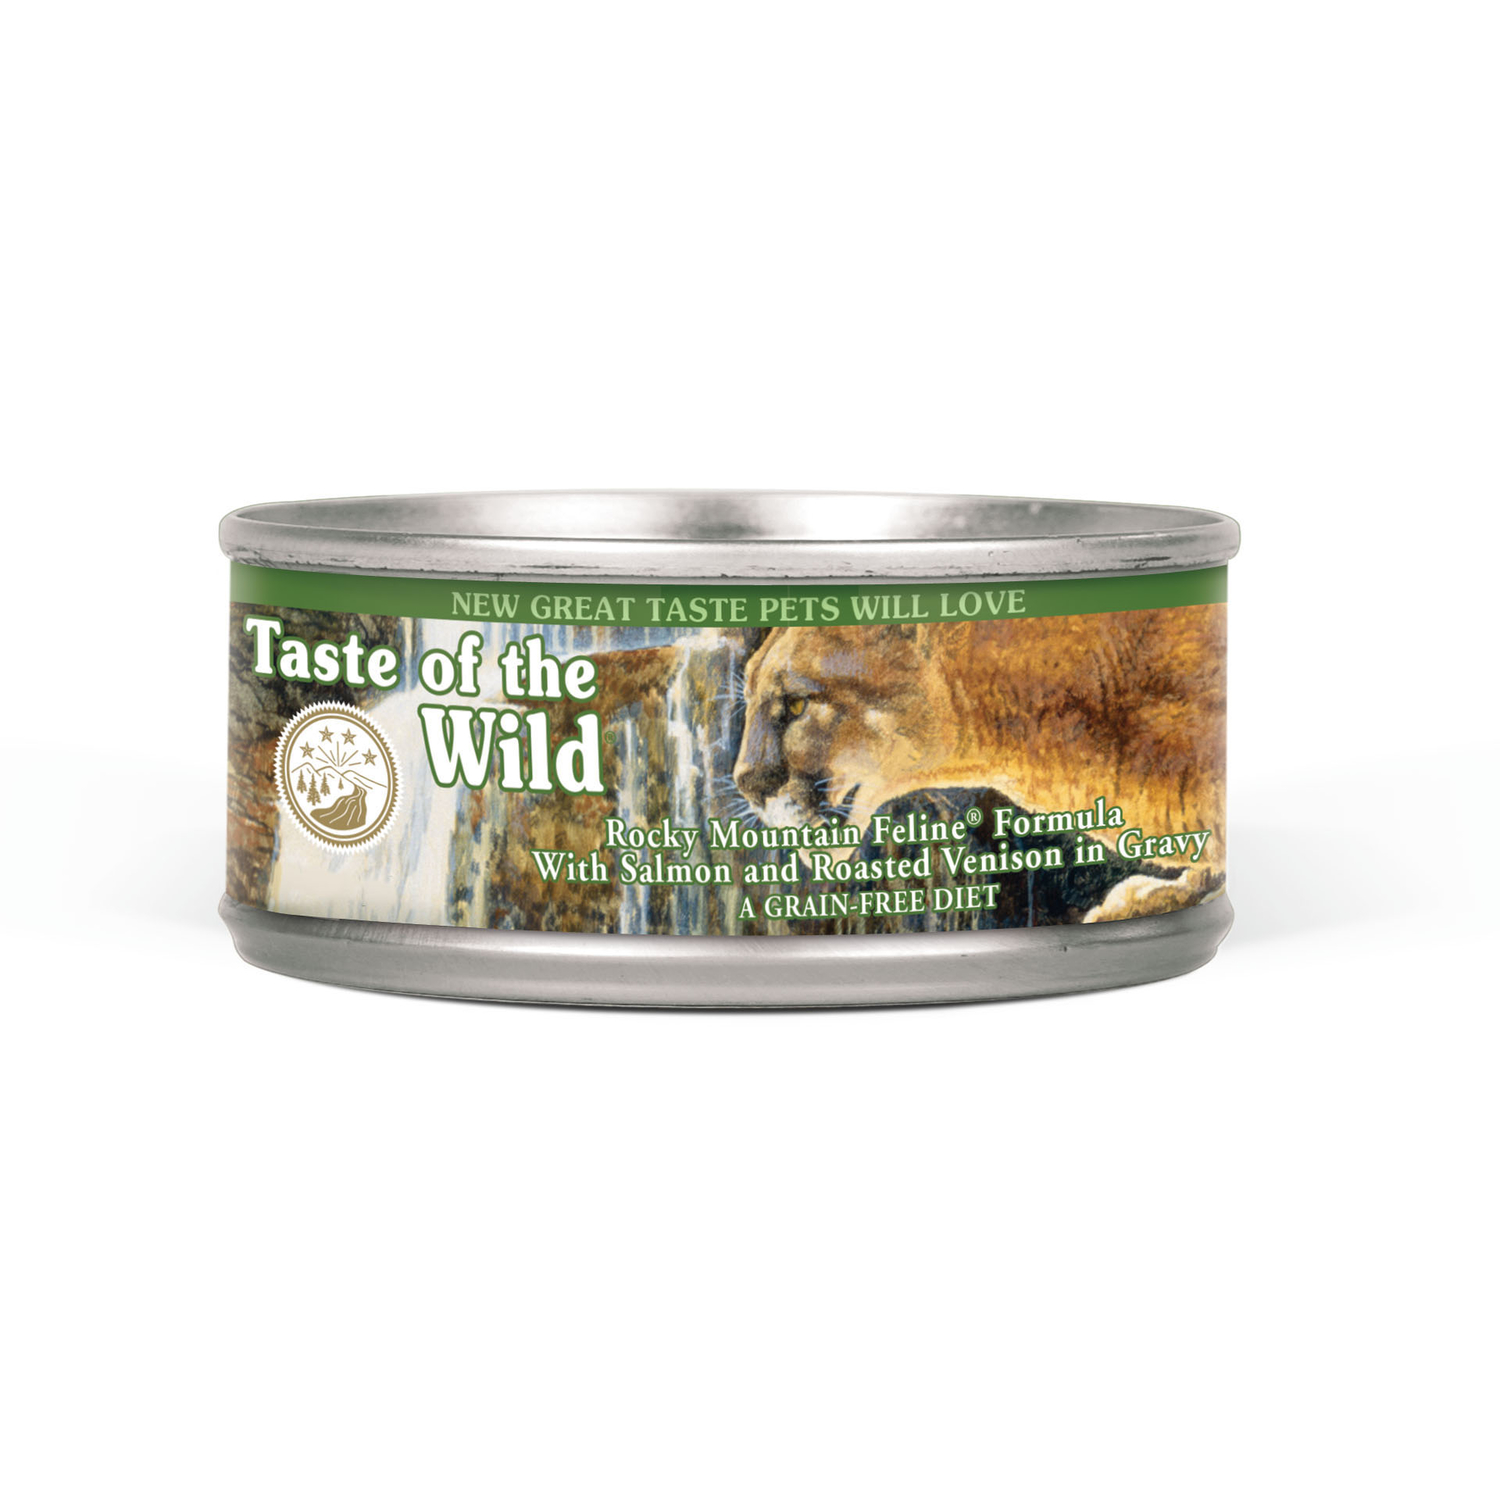 Taste of the Wild  Rocky Mountain Feline  Venison & Salmon  Minced  Dog  Food  Grain Free 5.5 oz.